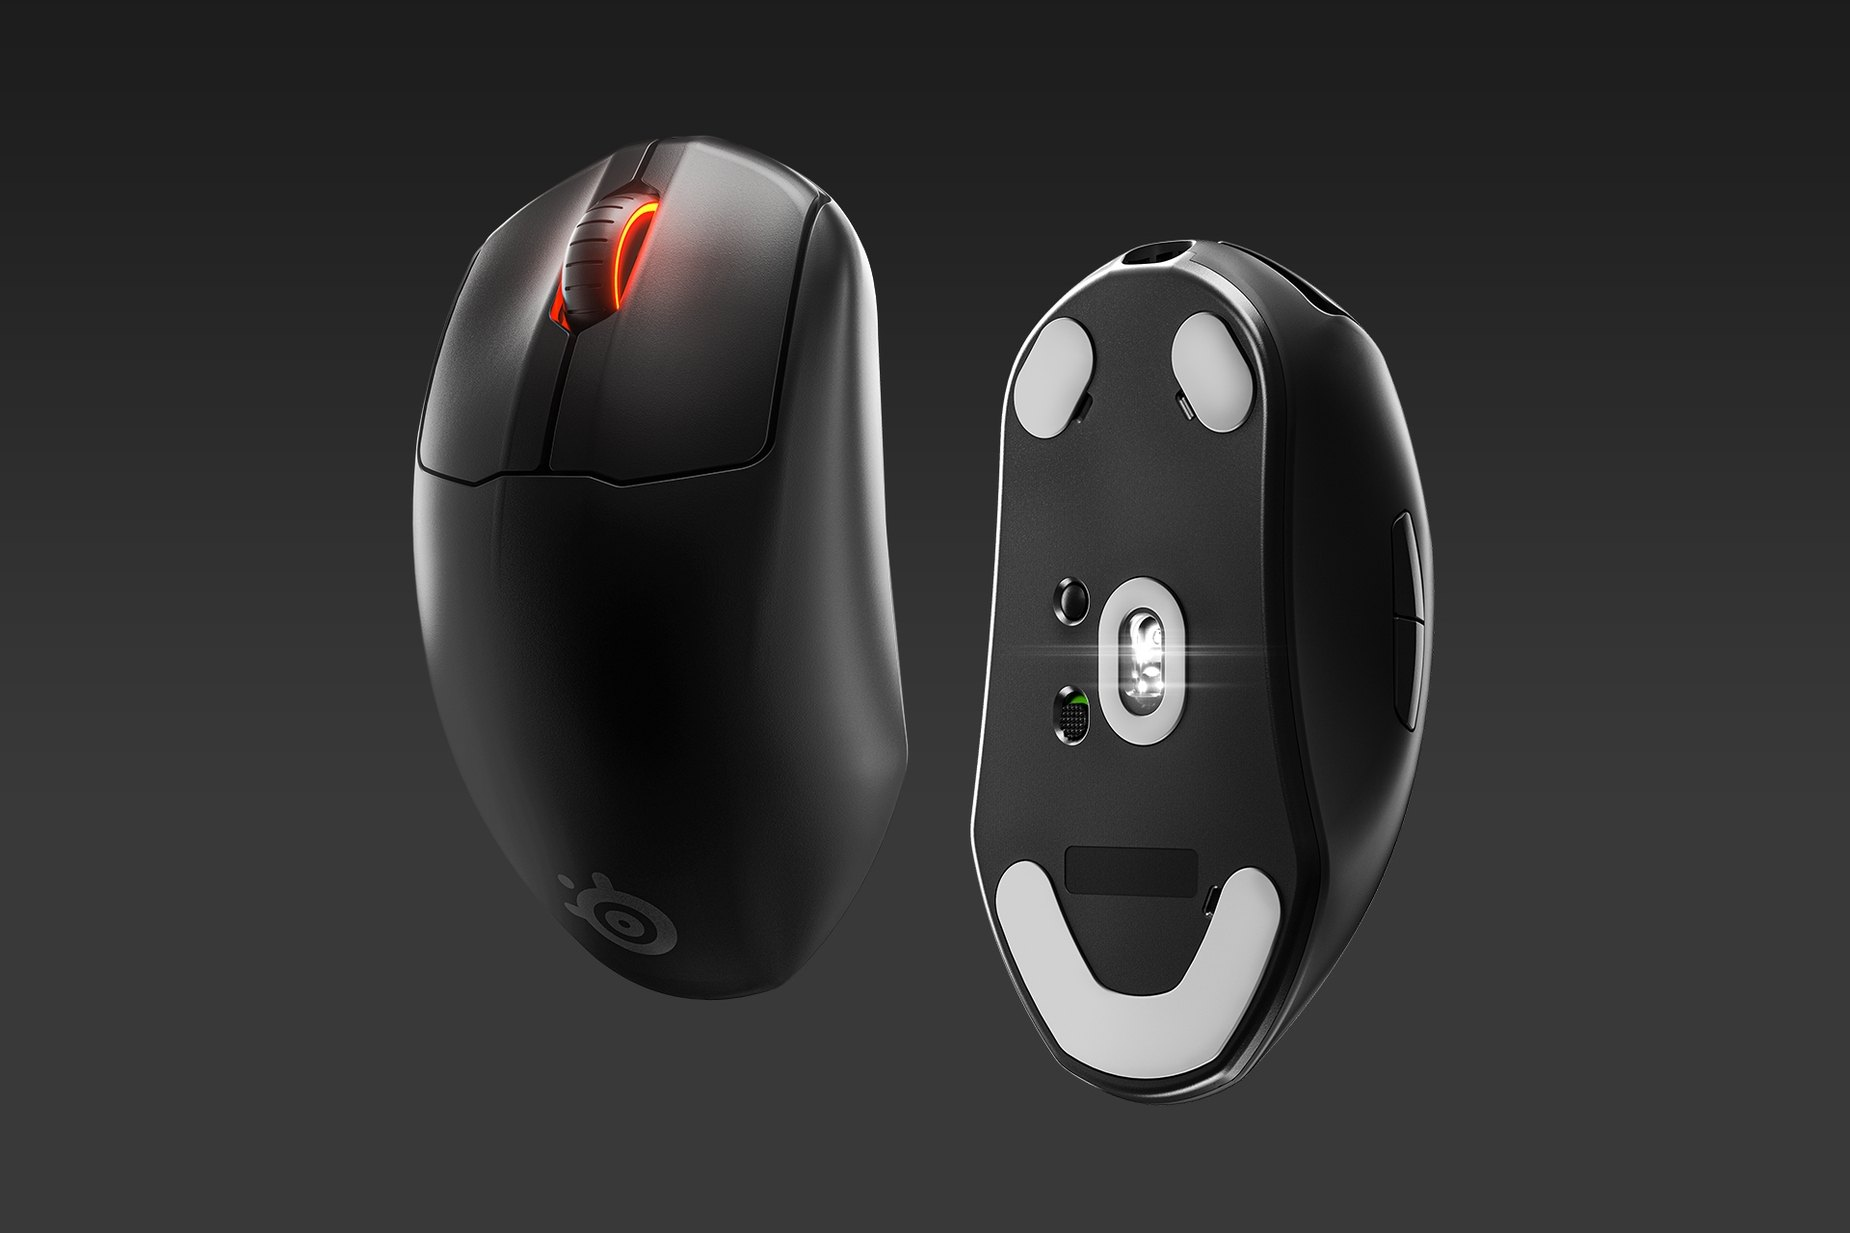 Two Prime Wireless mice: one showing the palm rest and the other showing the sensor.